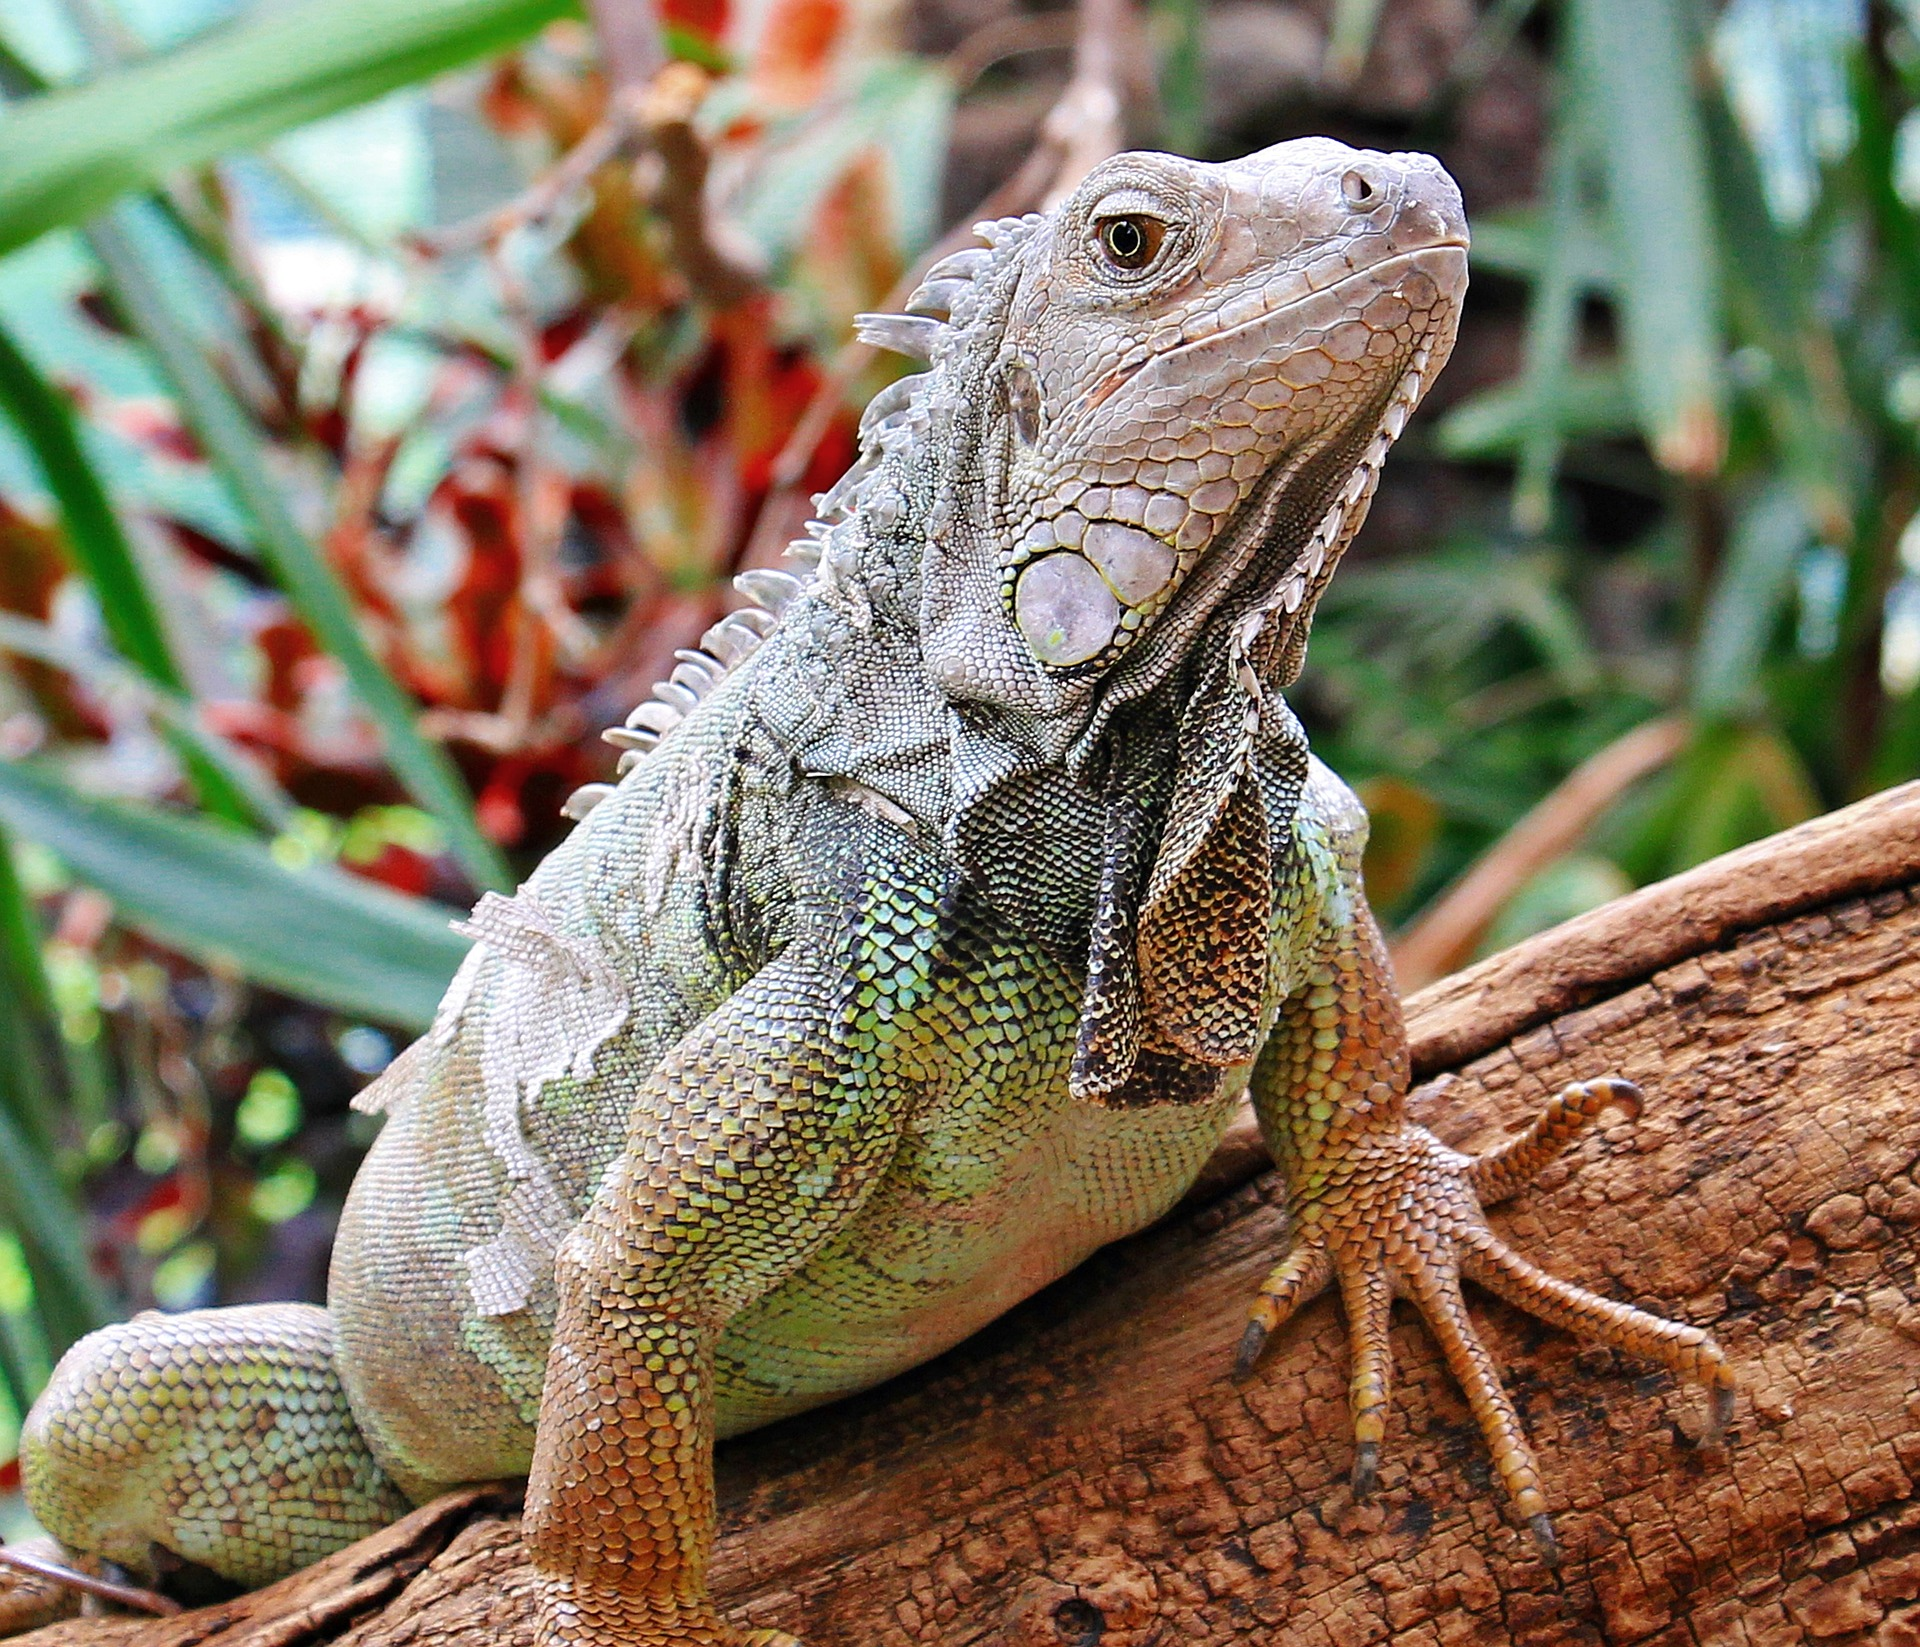 Wild Iguana, Reptile, Wild, Park, Nature, HQ Photo